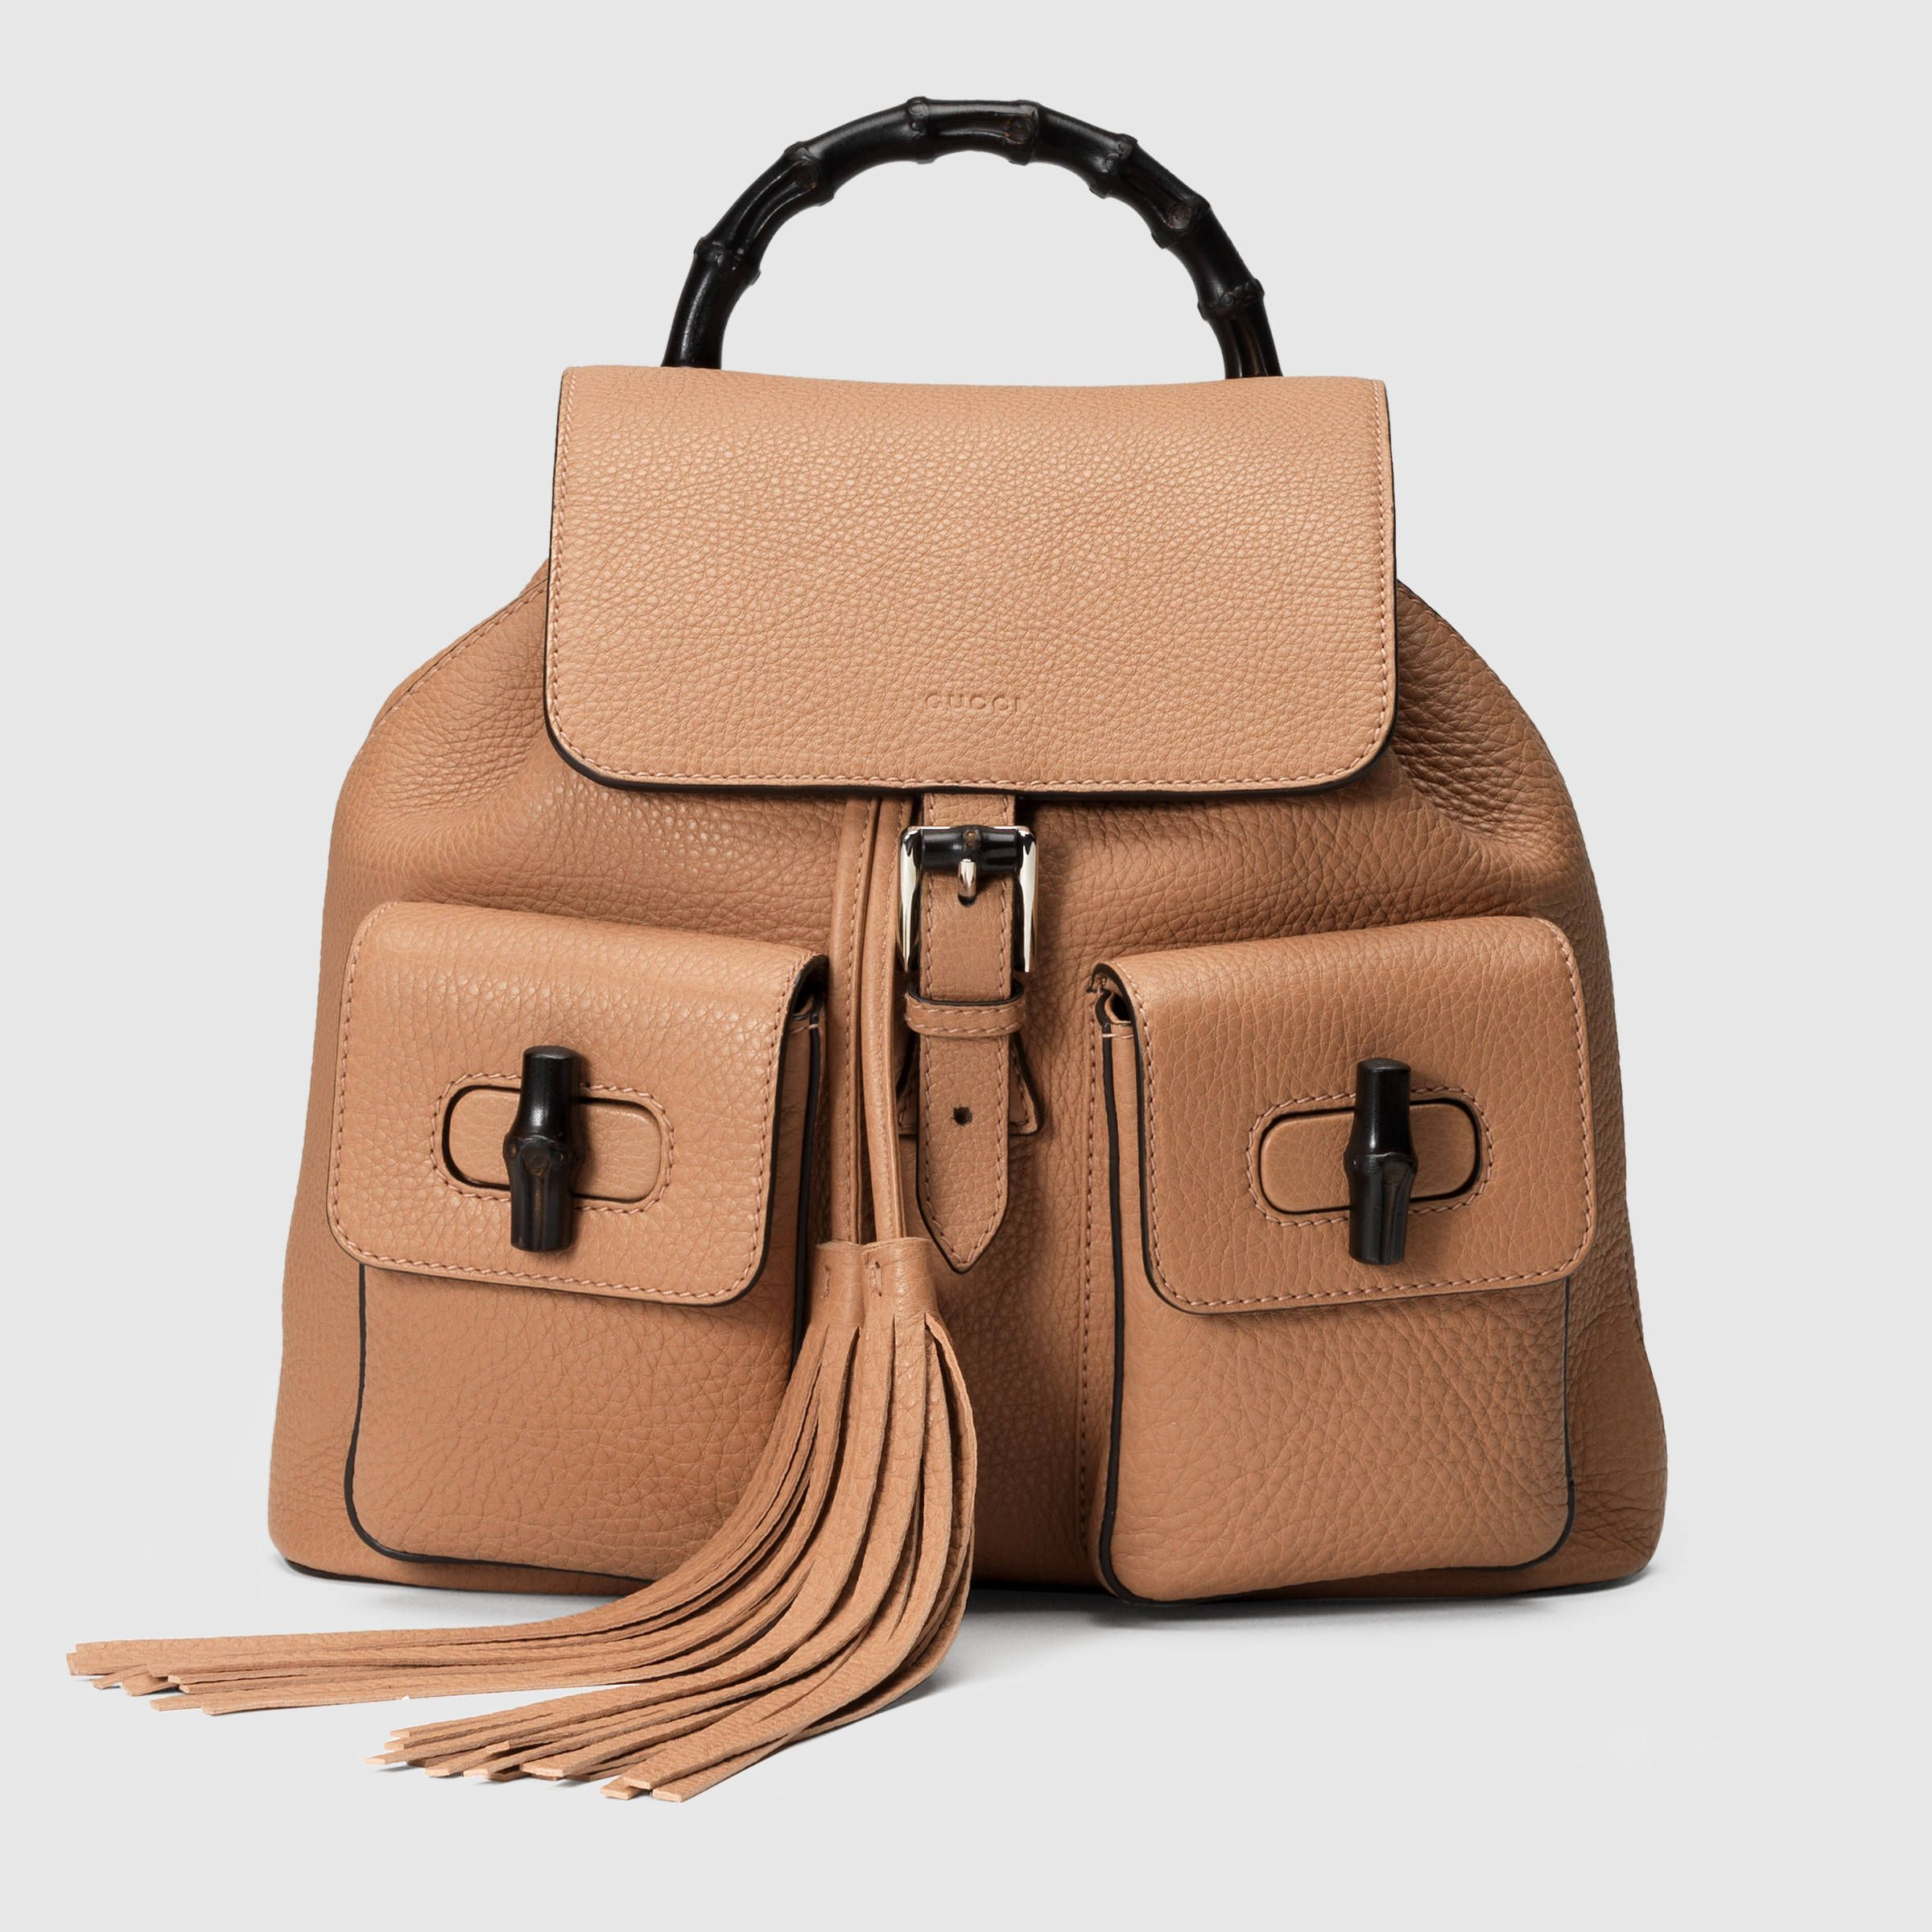 Gucci Backpack Women